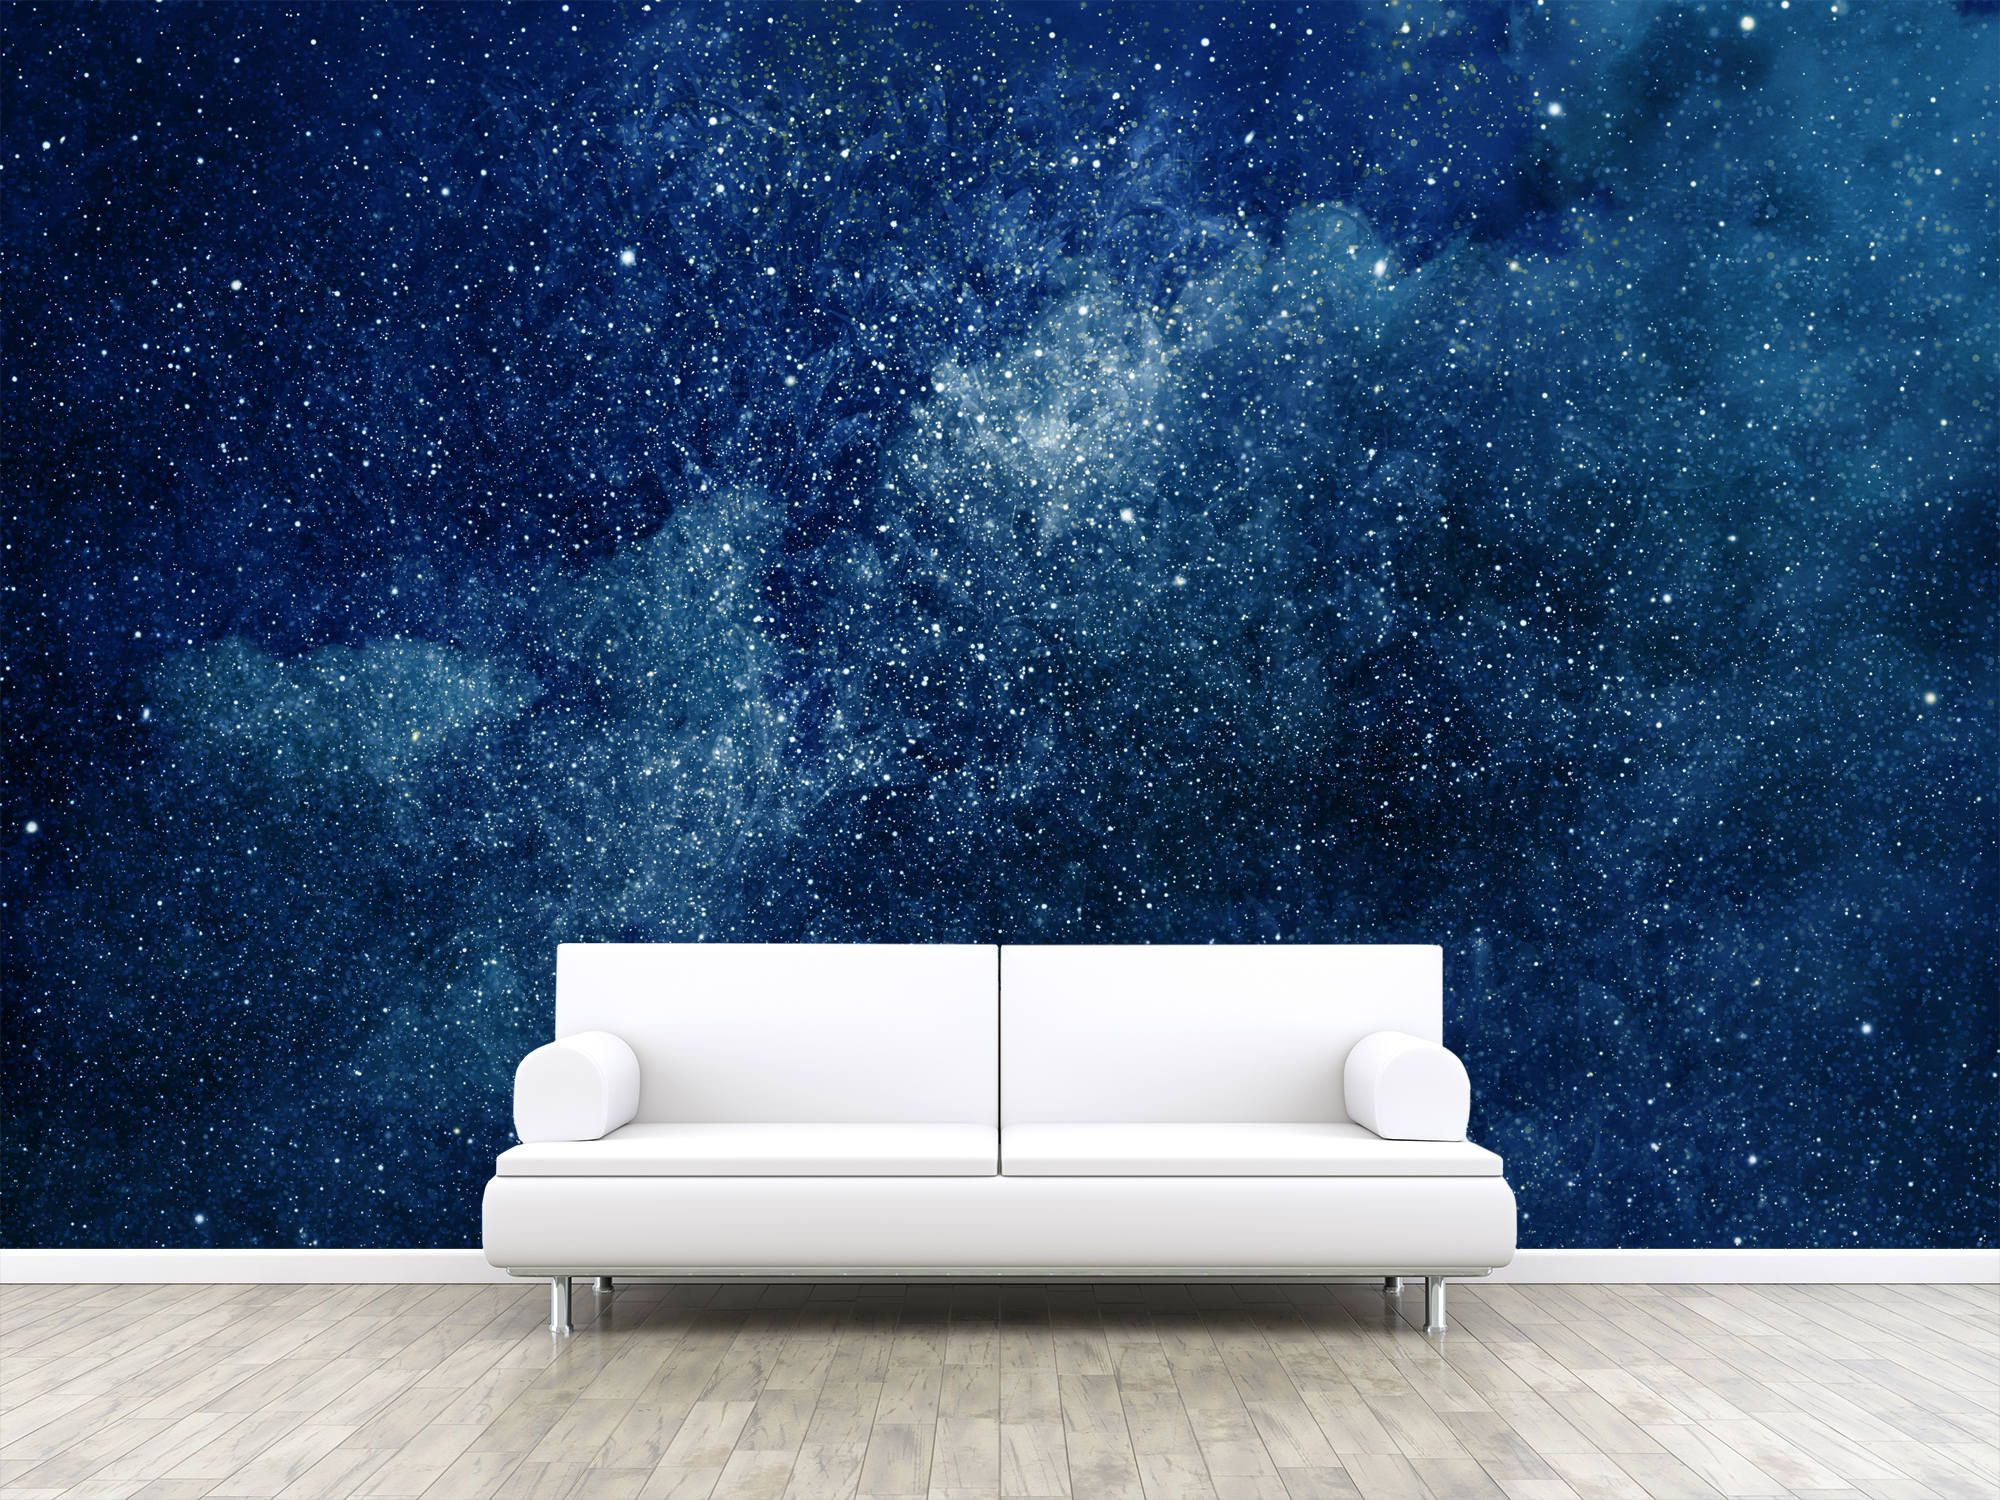 Universe Filled With Stars Photo Wallpaper Removable Wall Etsy Photo Wallpaper Wall Wallpaper Wall Murals